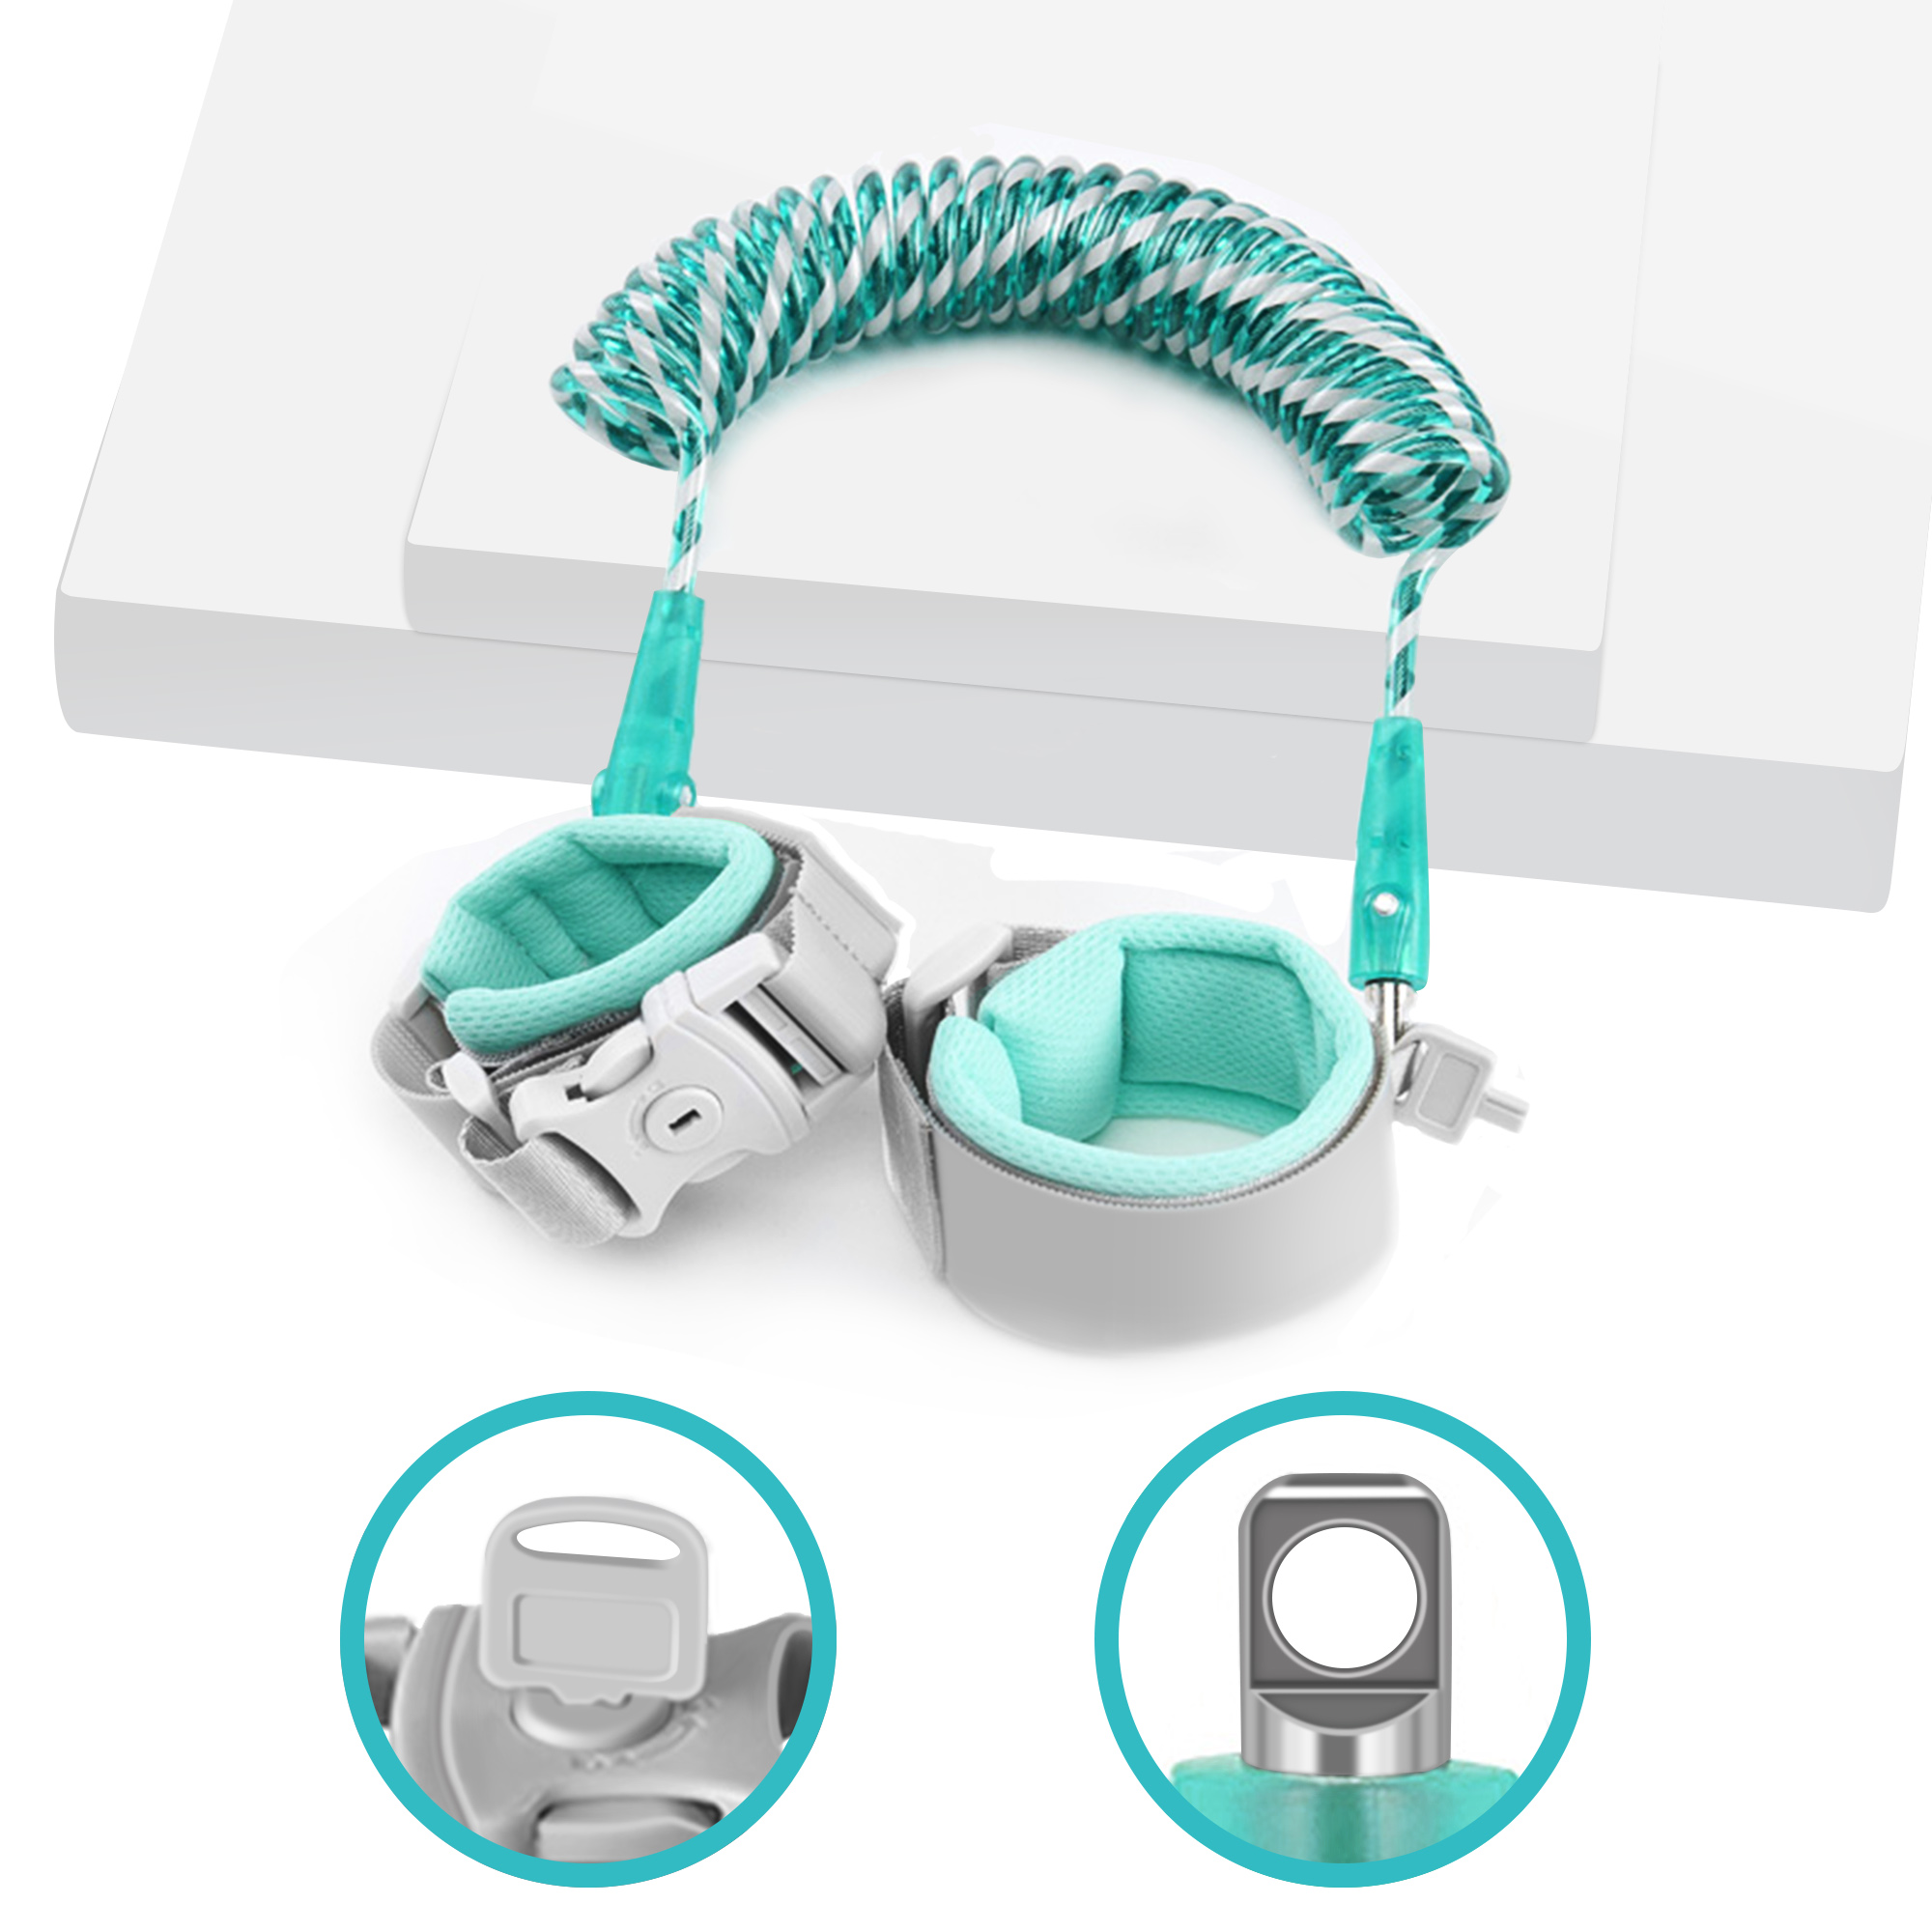 Reflective Anti Lost Wrist Link for Toddlers, 360°Rotate Night Vision Babies Anti Lost Wrist Link with Child Lock Safety Wristband